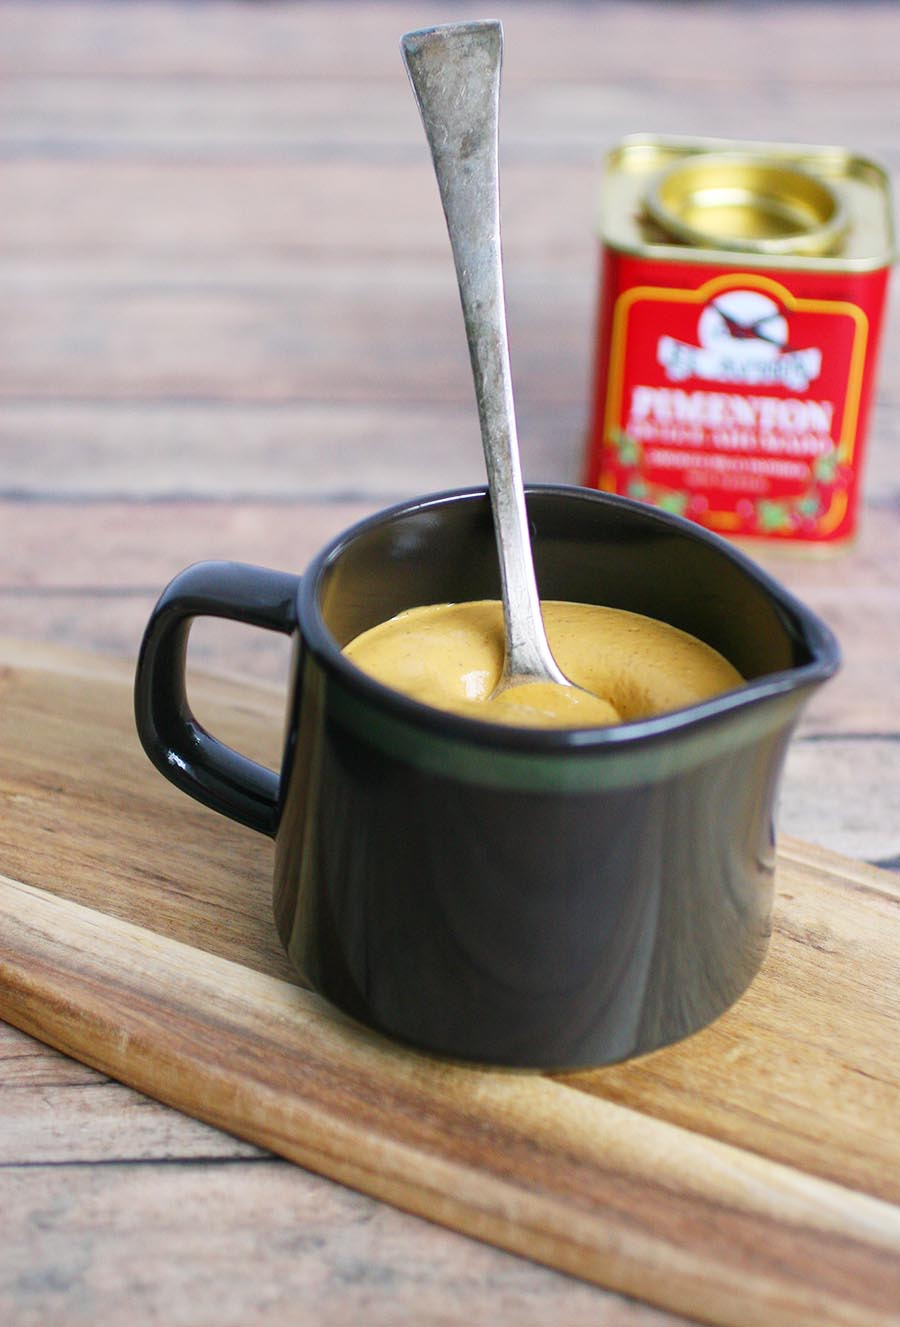 A brown pitcher of cream sauce sitting on a wooden board with a tin of paprika sitting in the background.